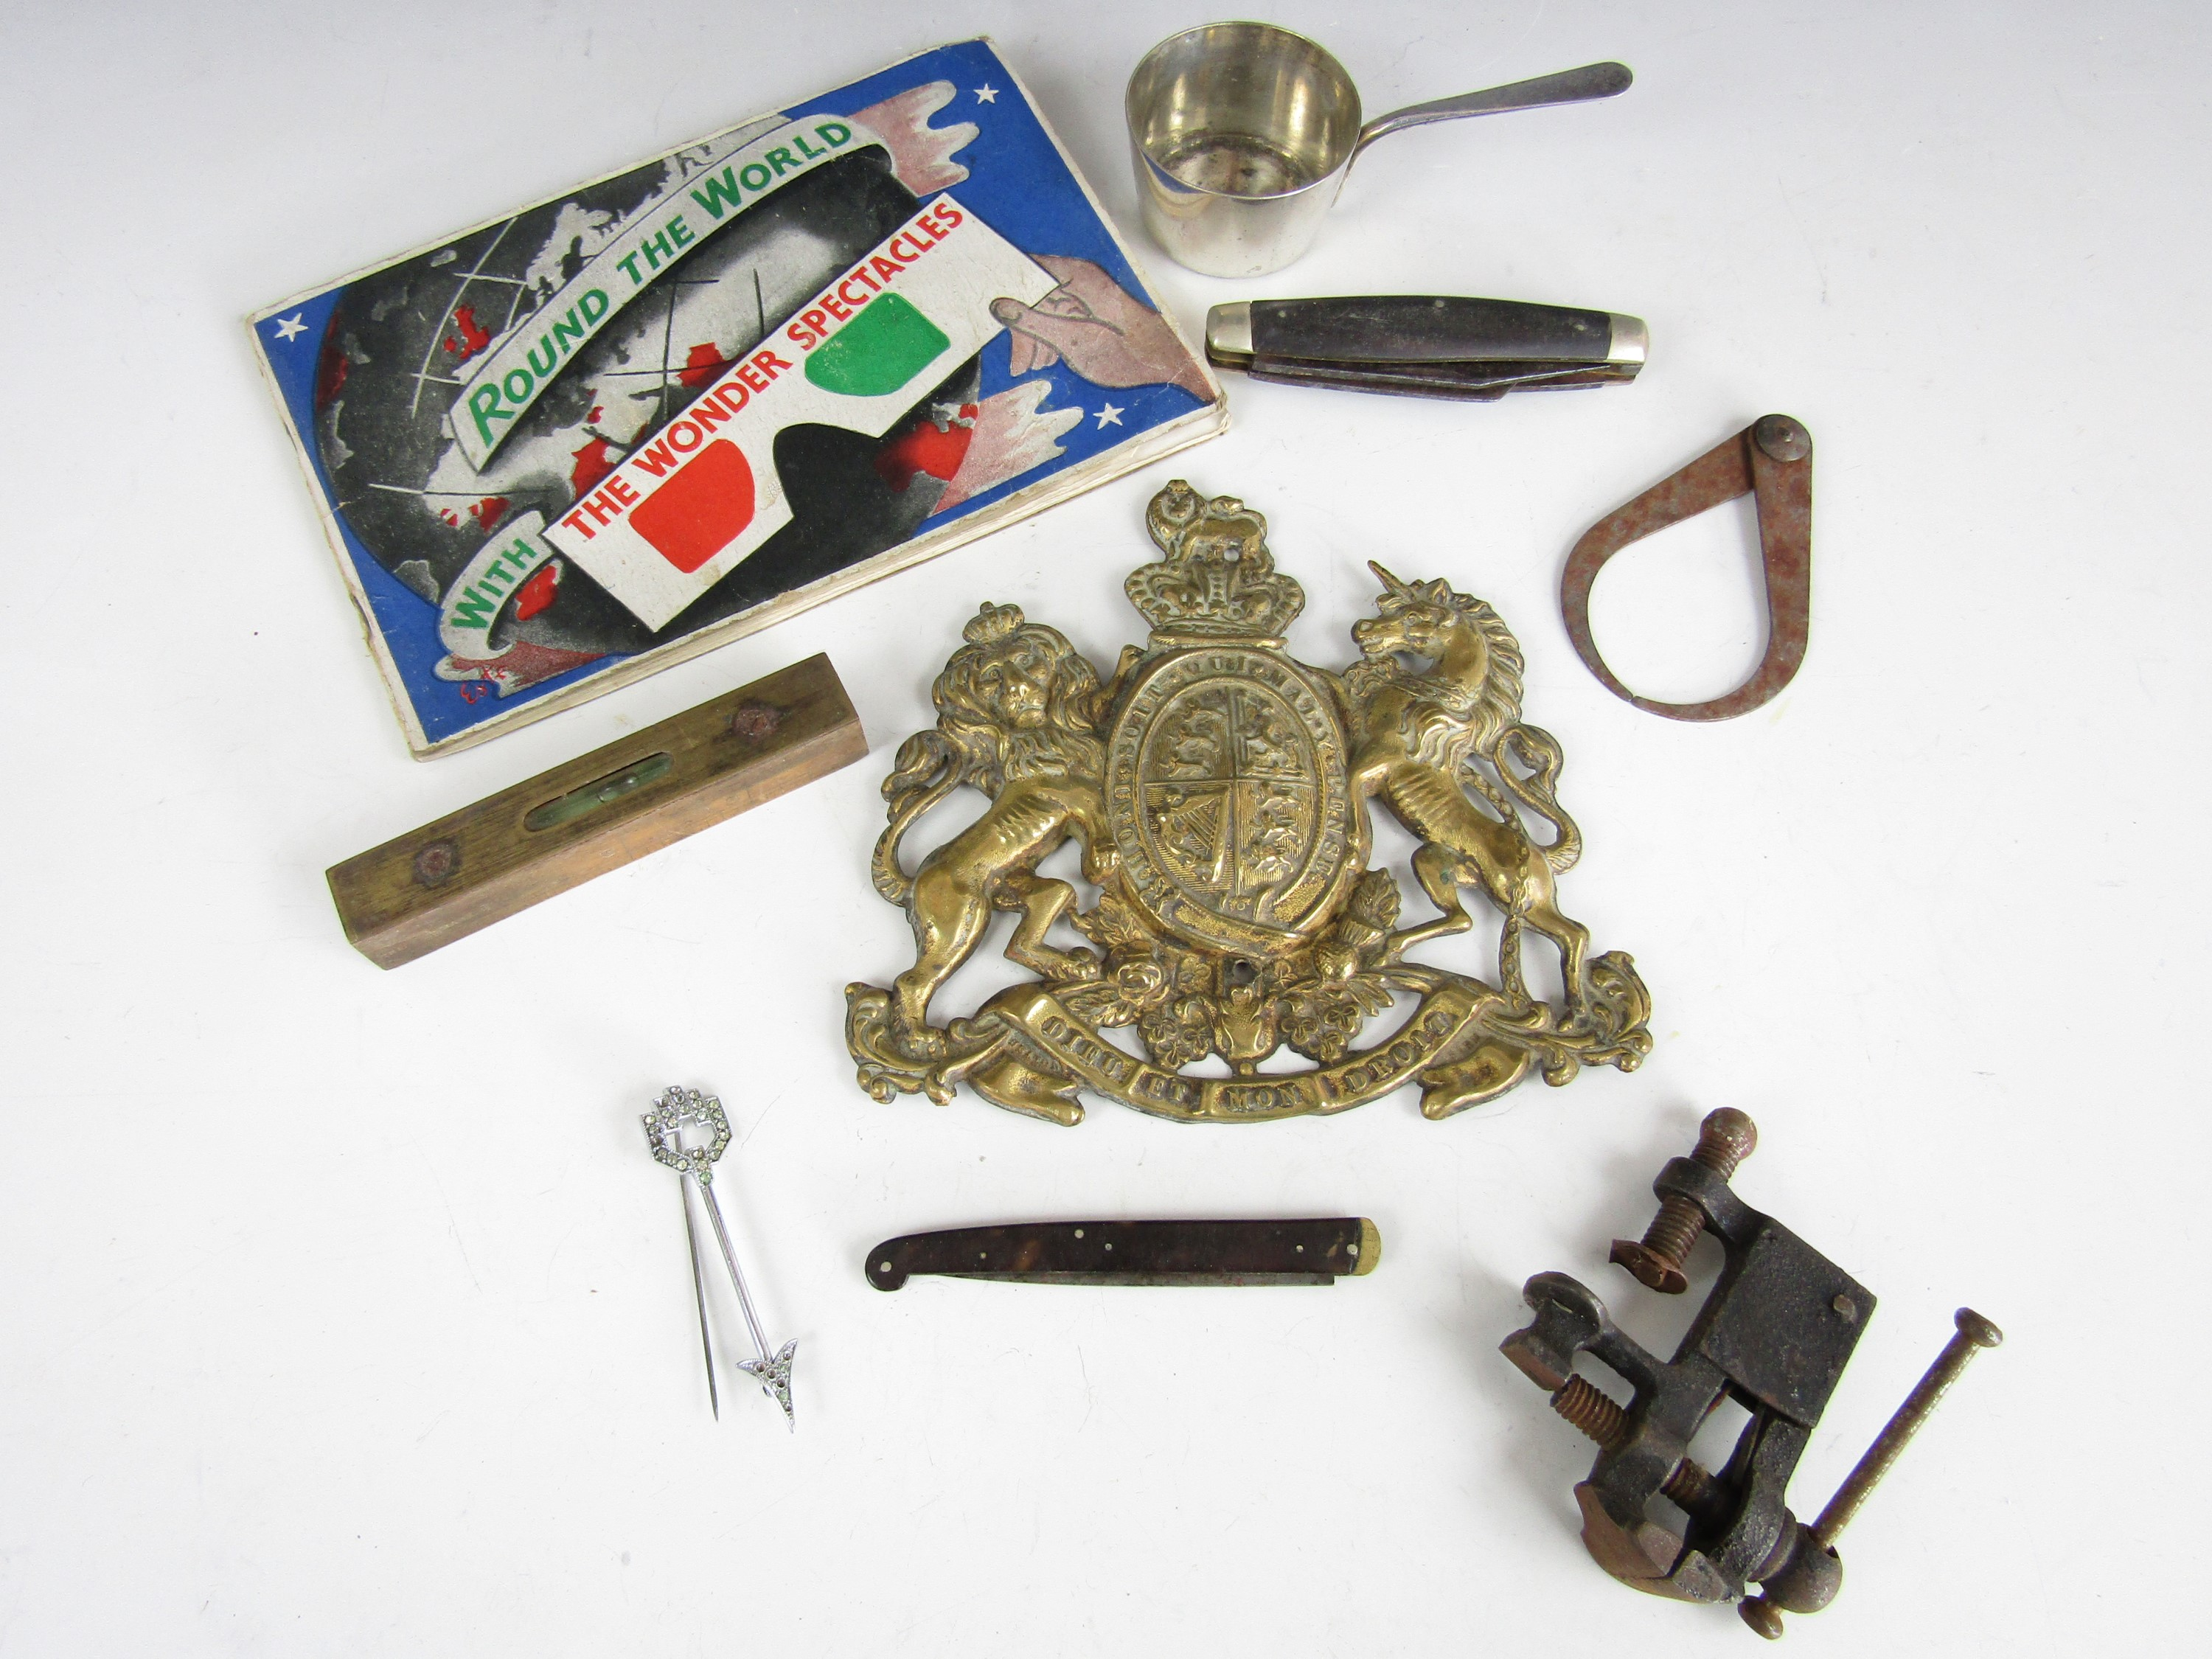 Lot 49 - Sundry collectors' items including a vintage game, callipers and penknives etc.